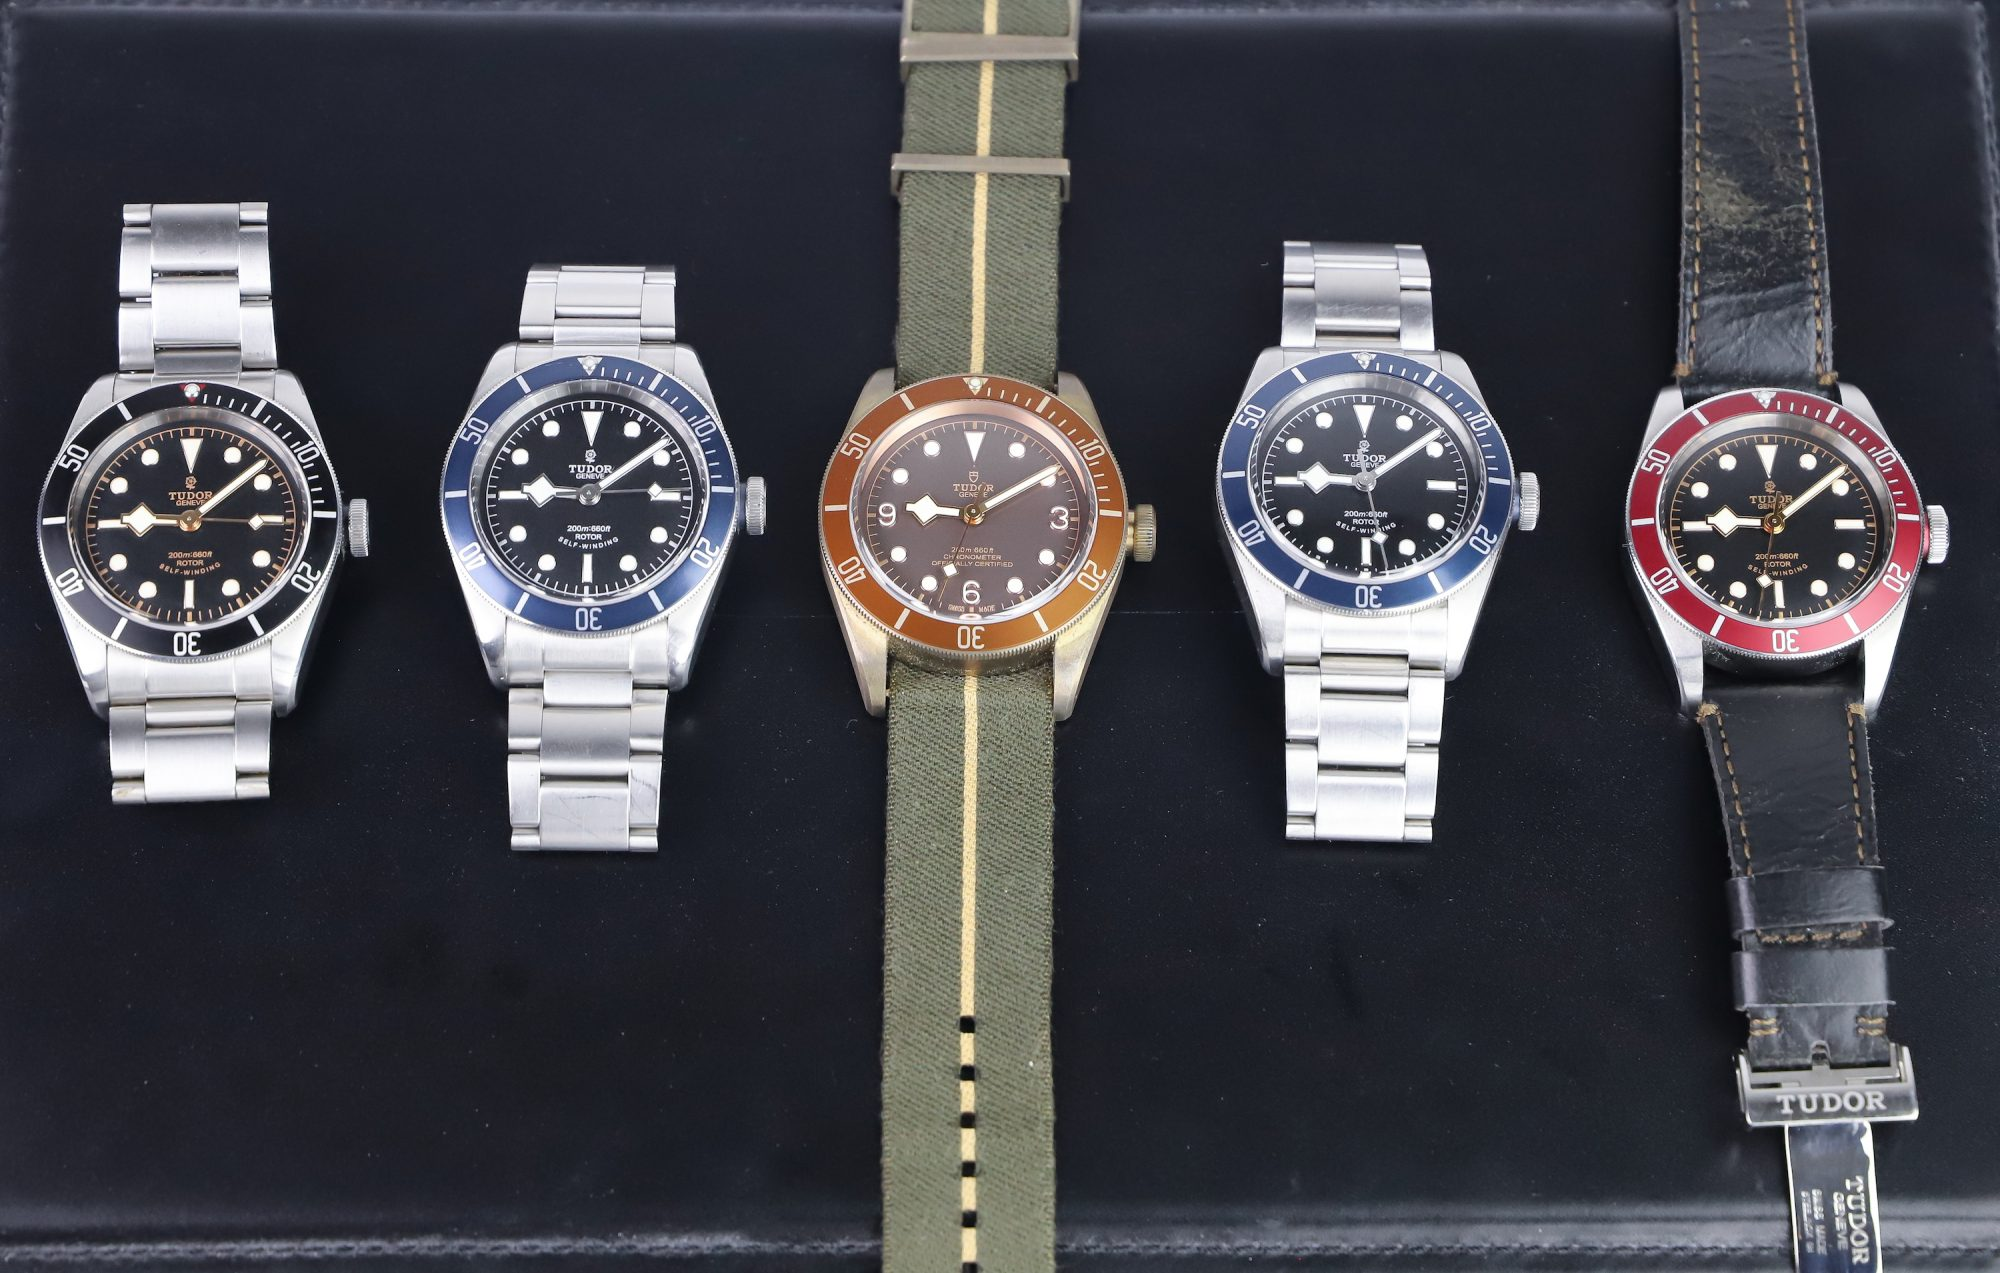 Watch review tudor Review: The